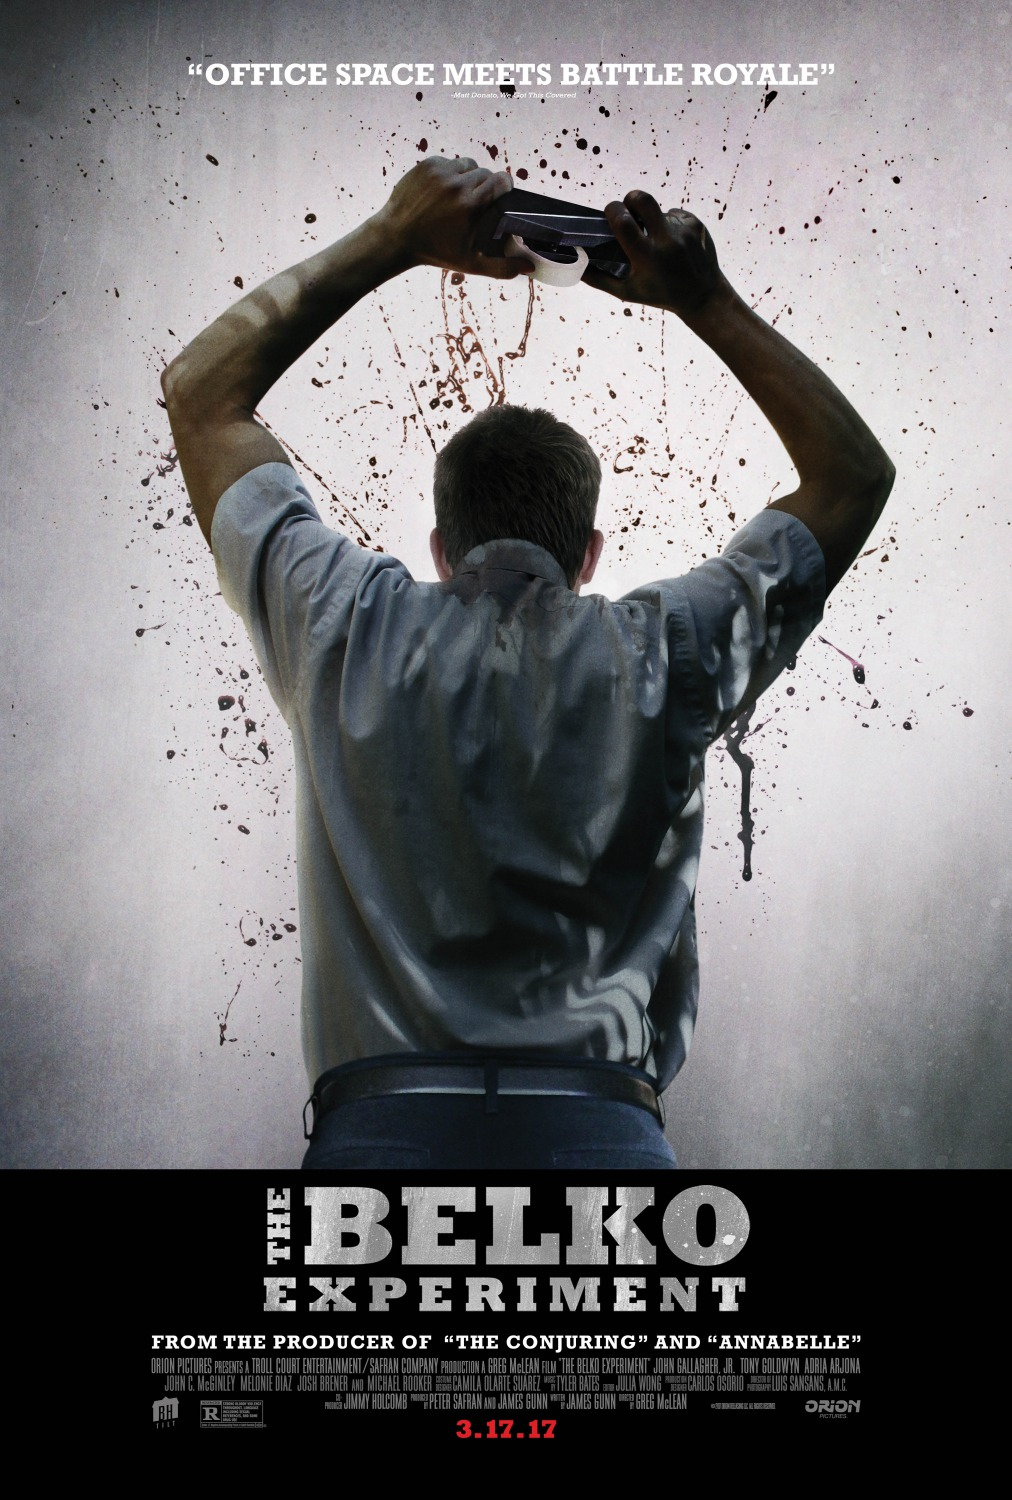 The Belko Experiment Movie Poster